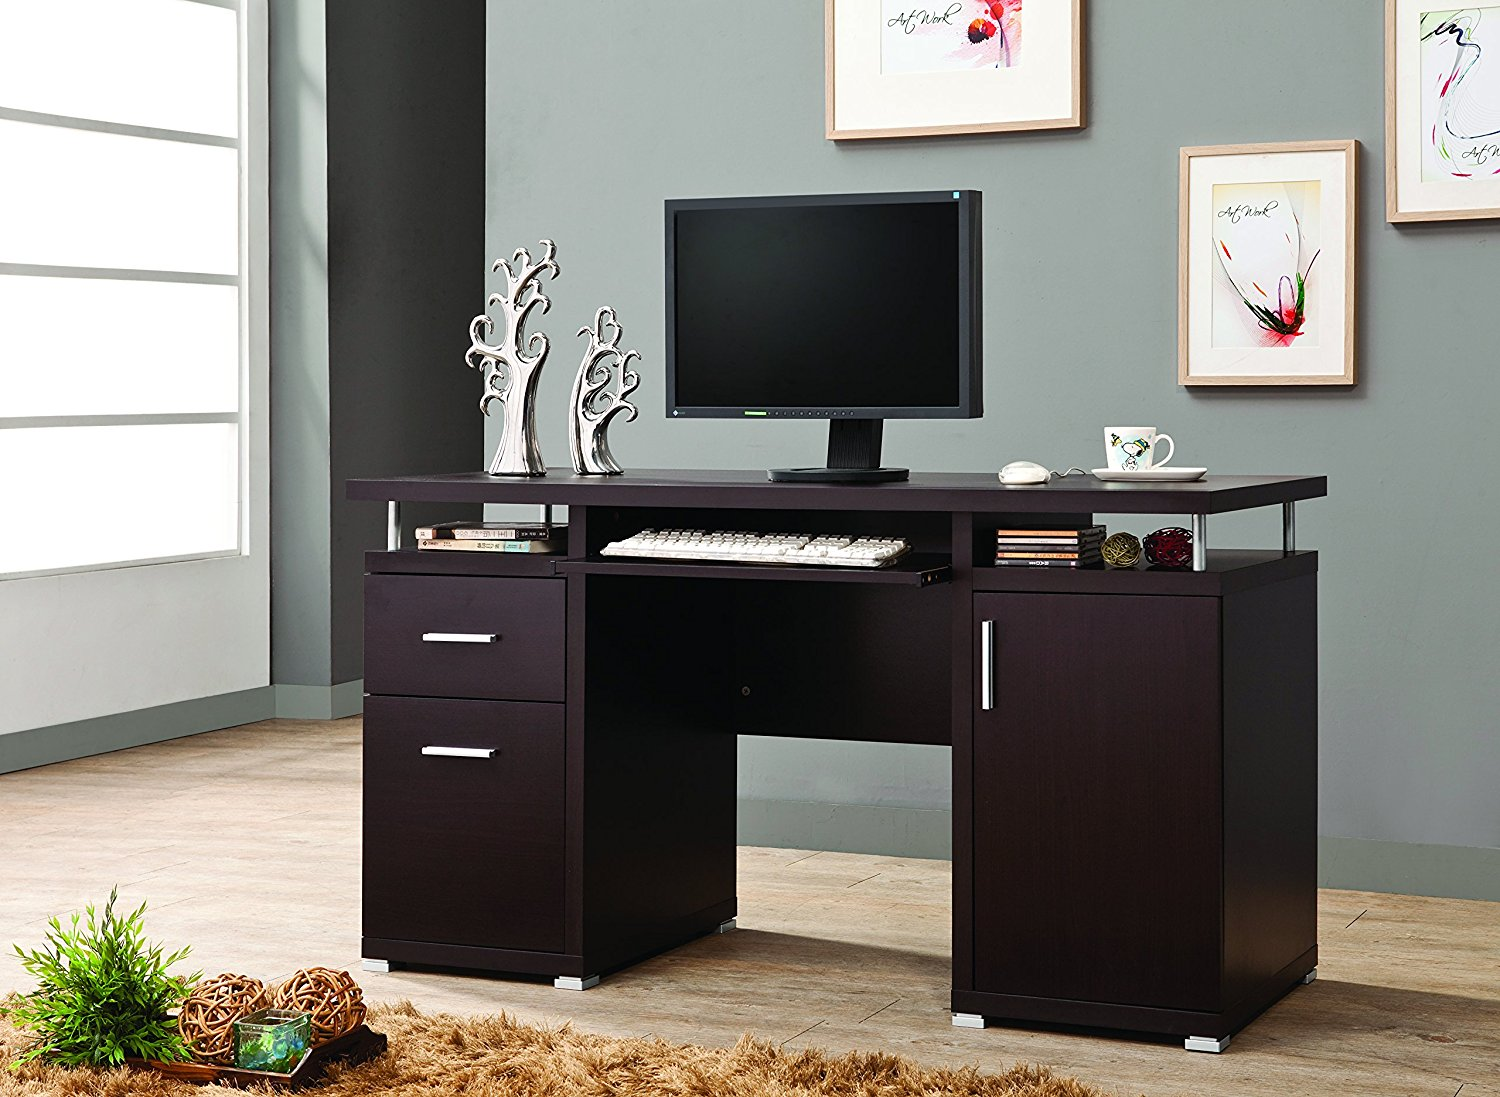 Coaster Home Furnishings 800107 Contemporary Computer Desk, Cappuccino